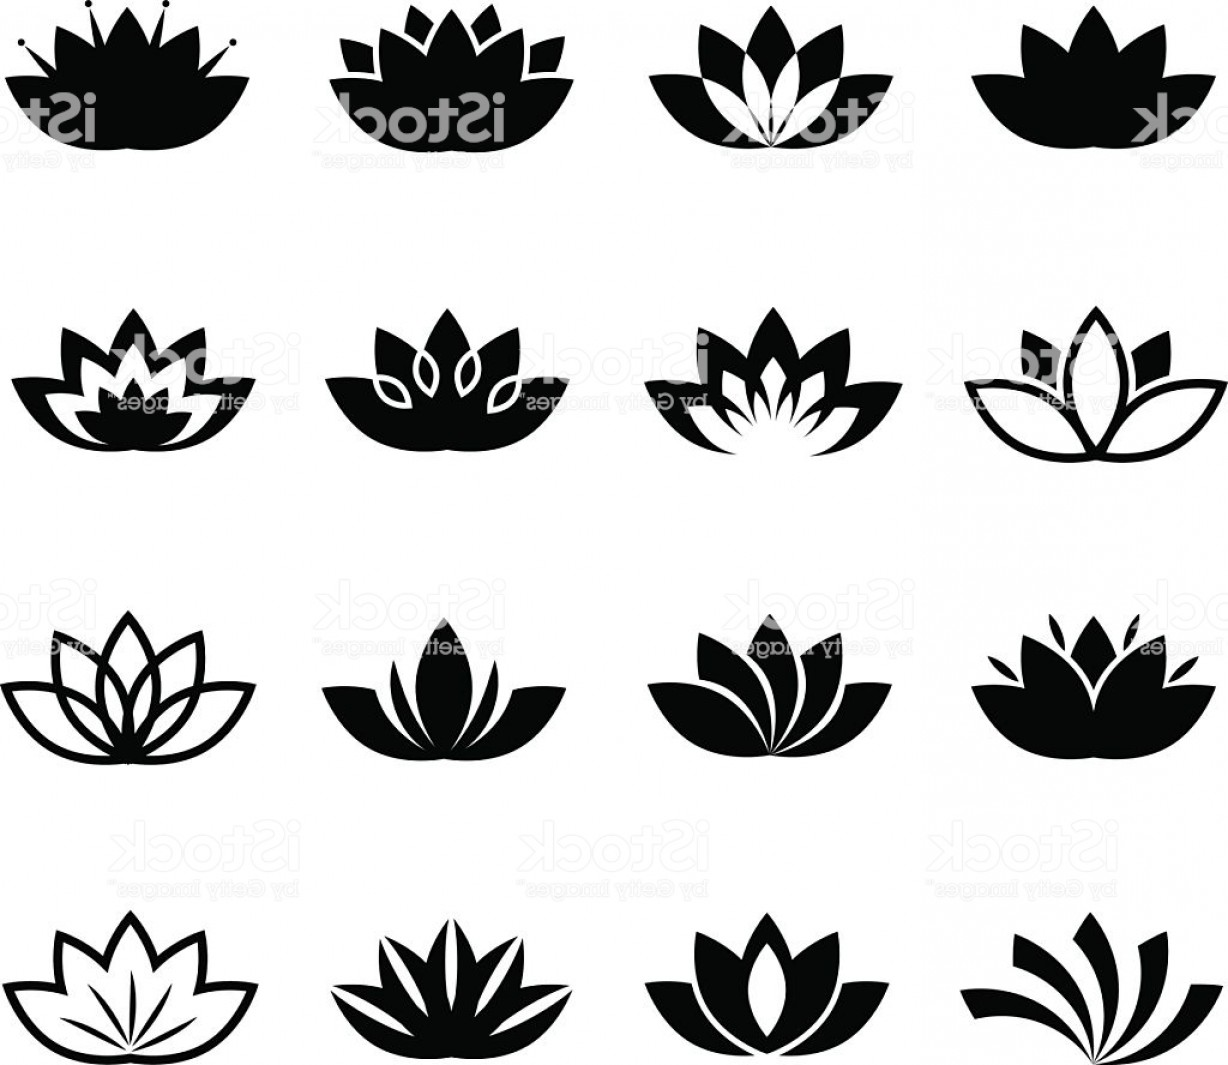 Icon Of Flower Vectors: Lotus Flower Vector Icons Set Gm